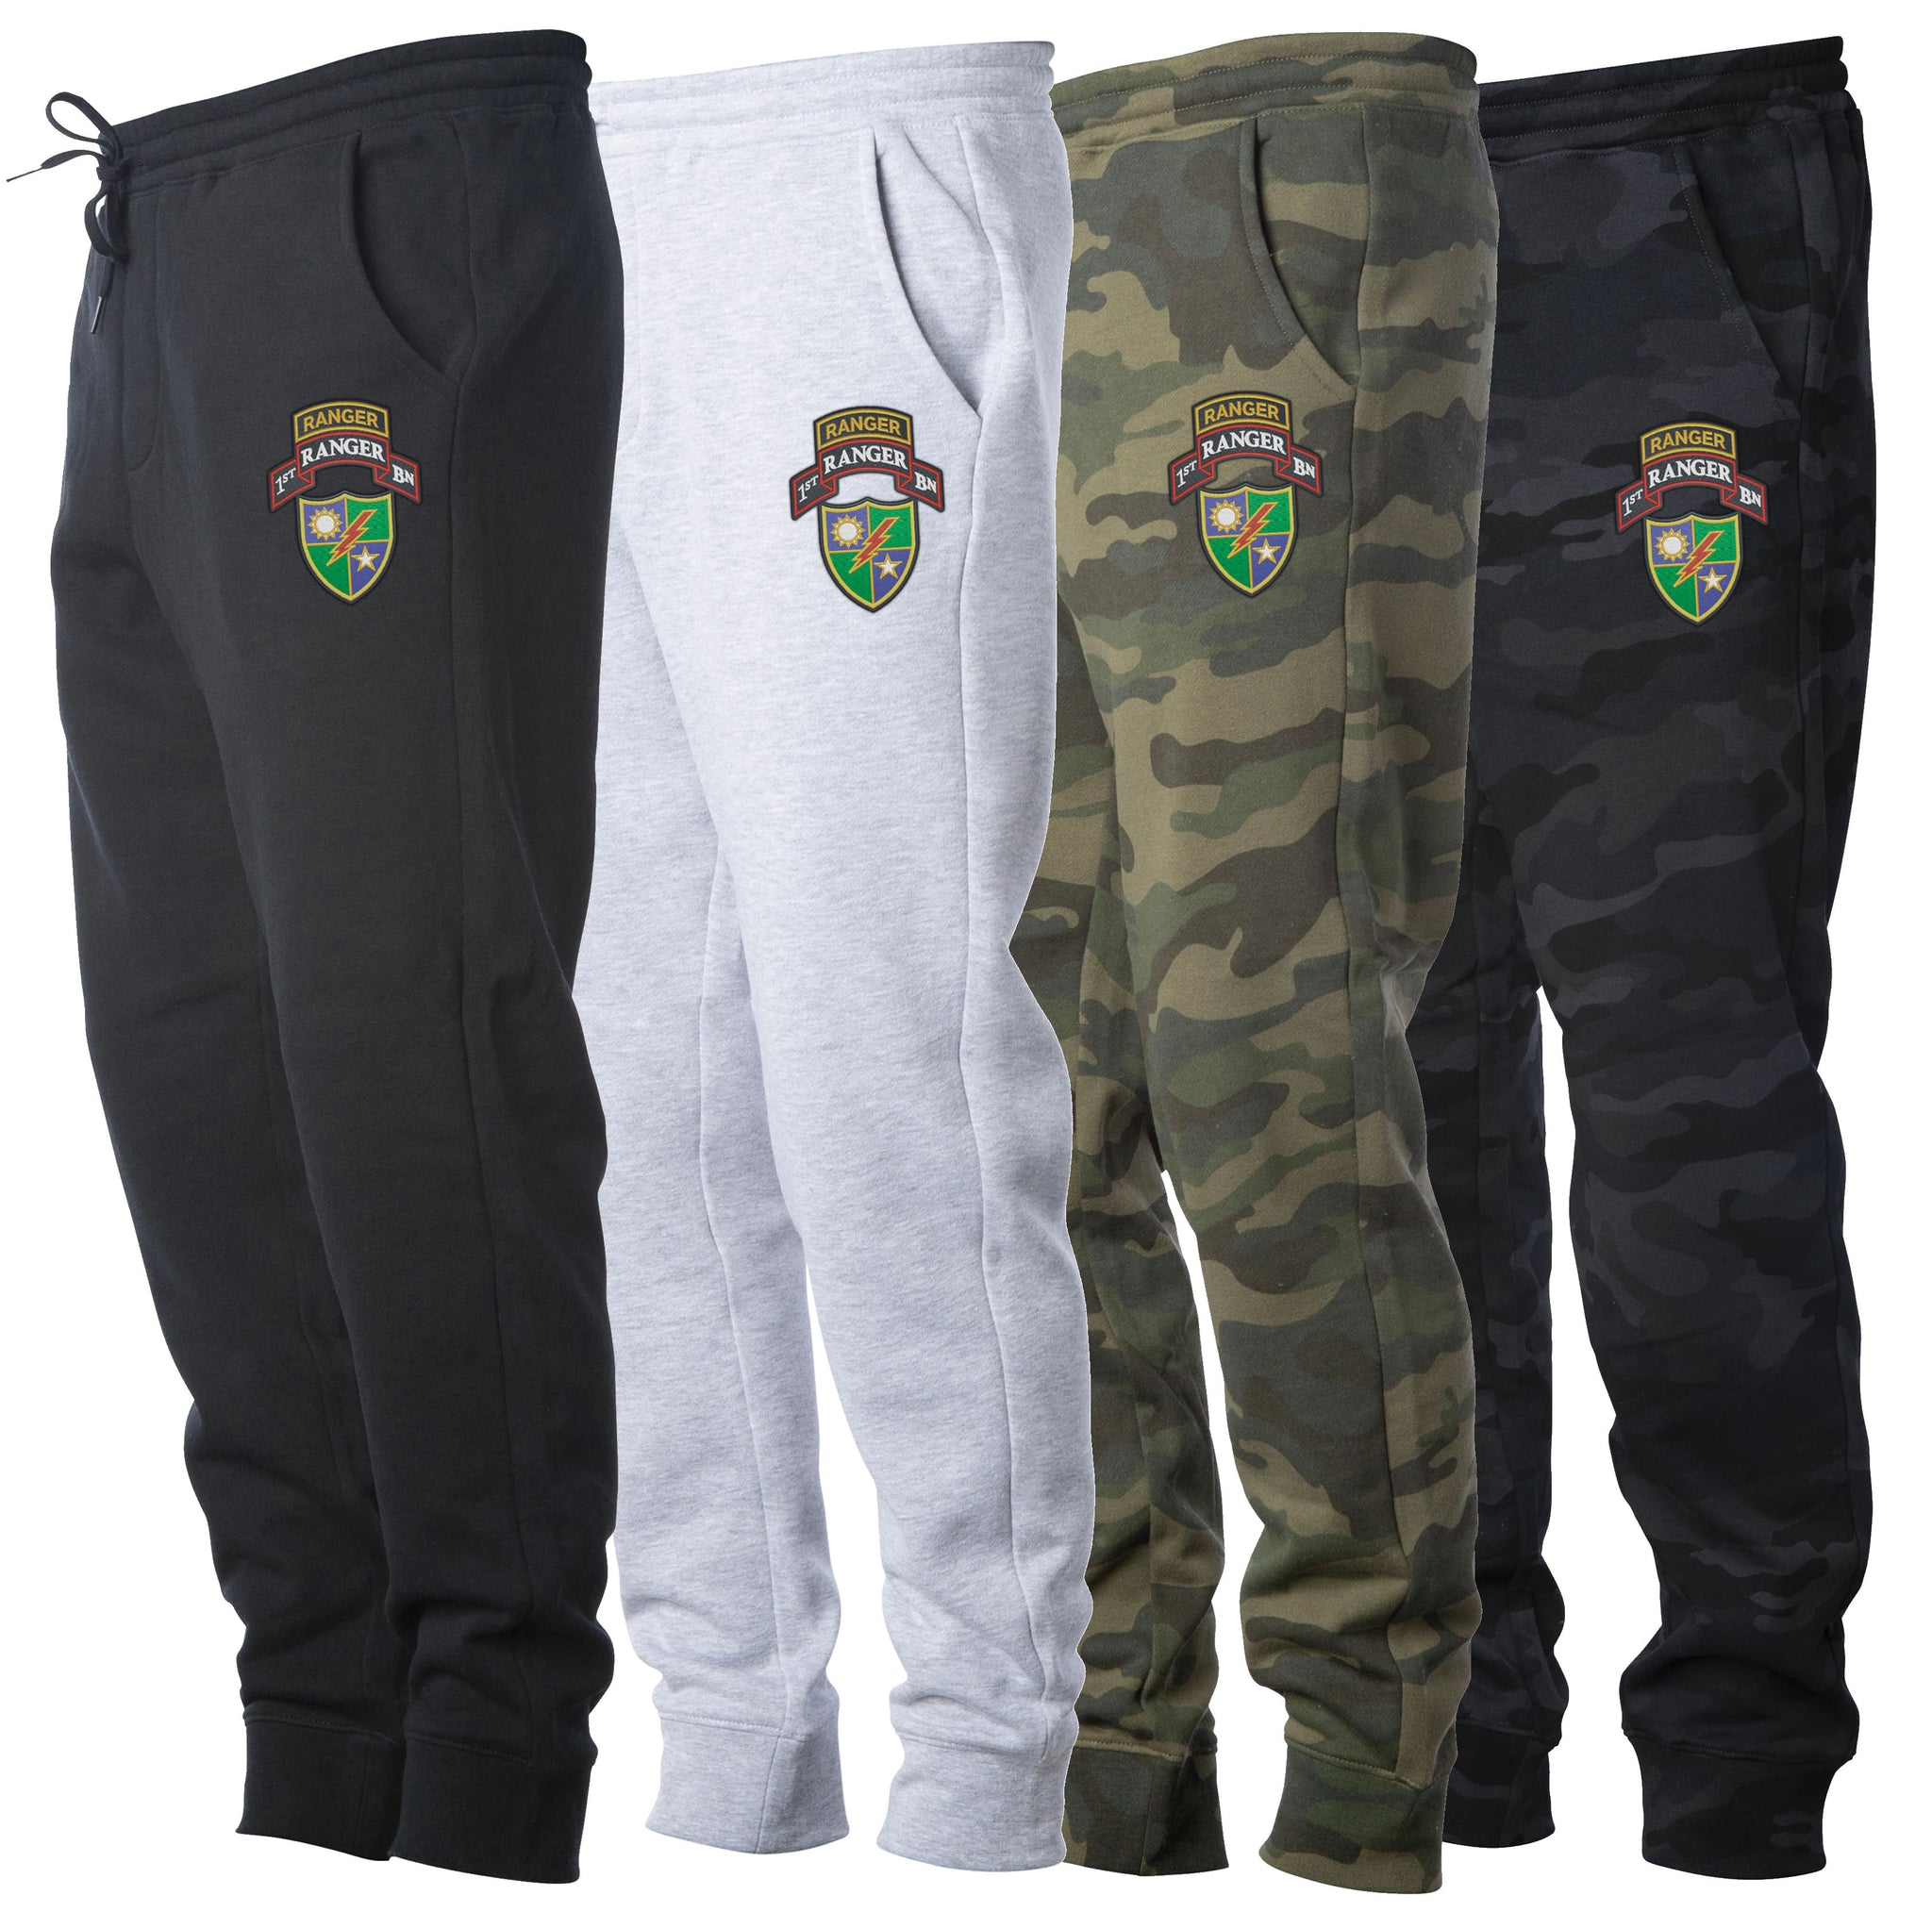 1st Batt Ranger Scroll Sweat Pants